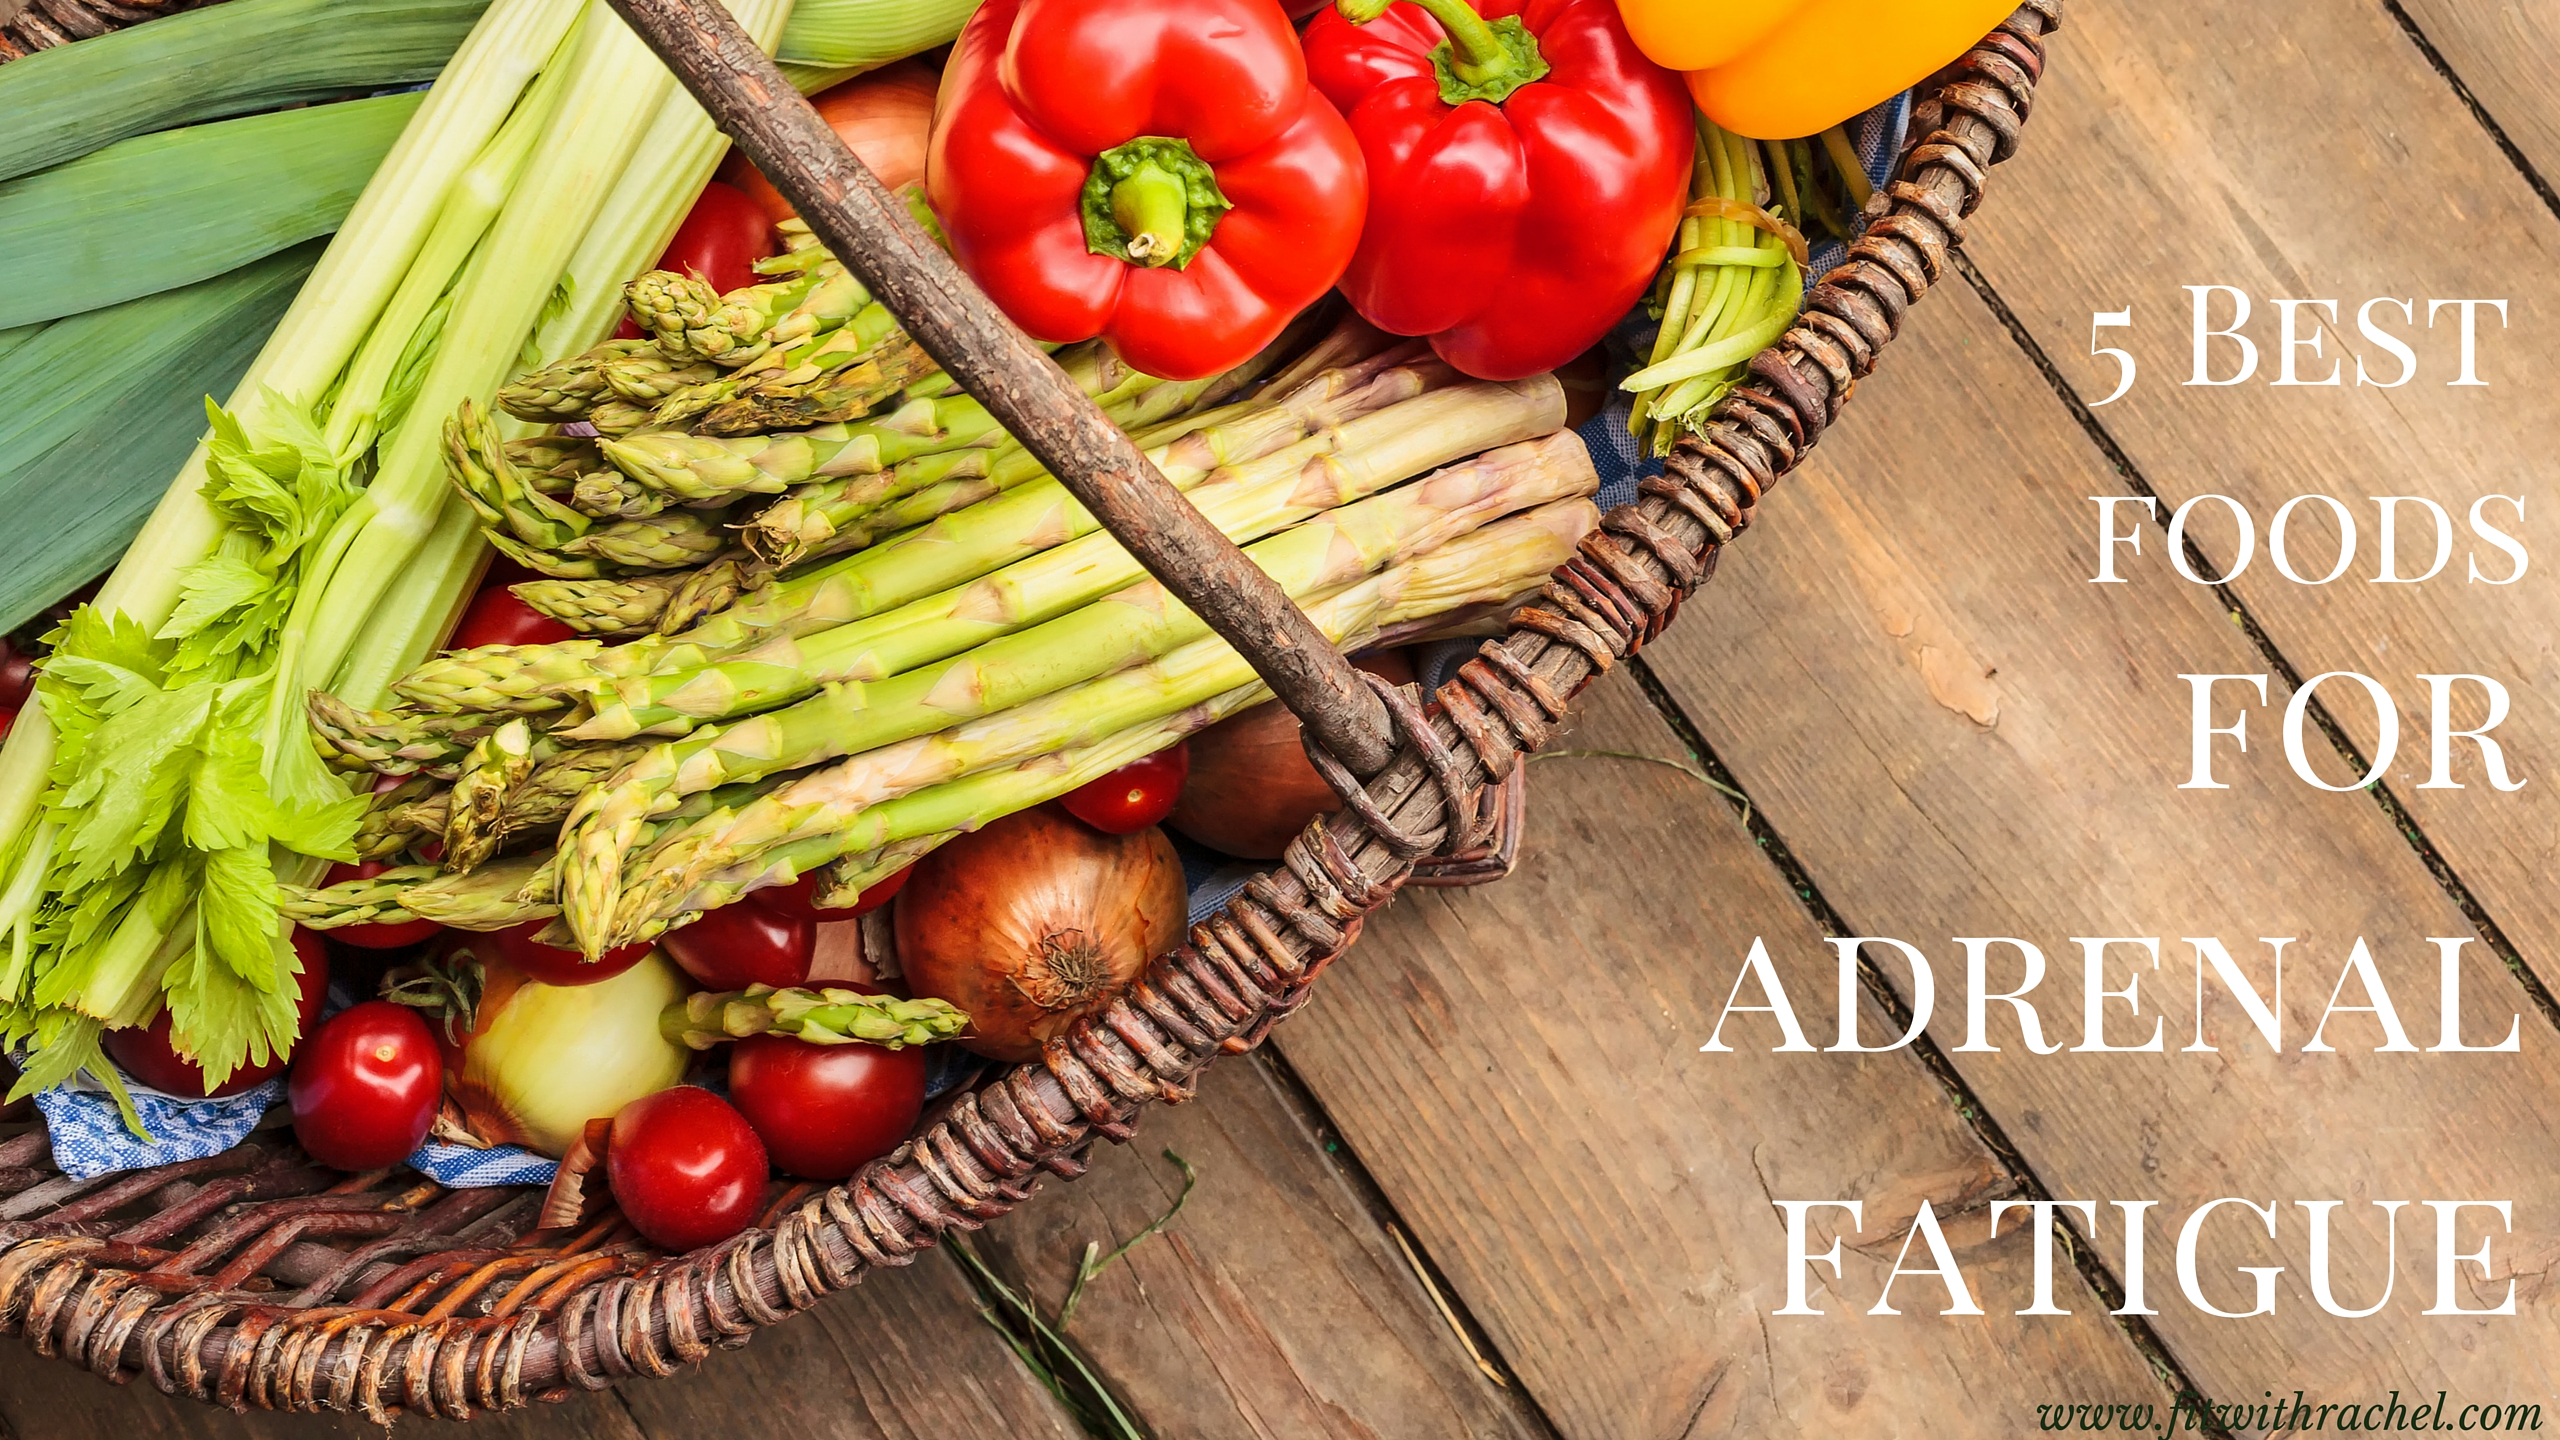 5 Best Foods for Adrenal Fatigue